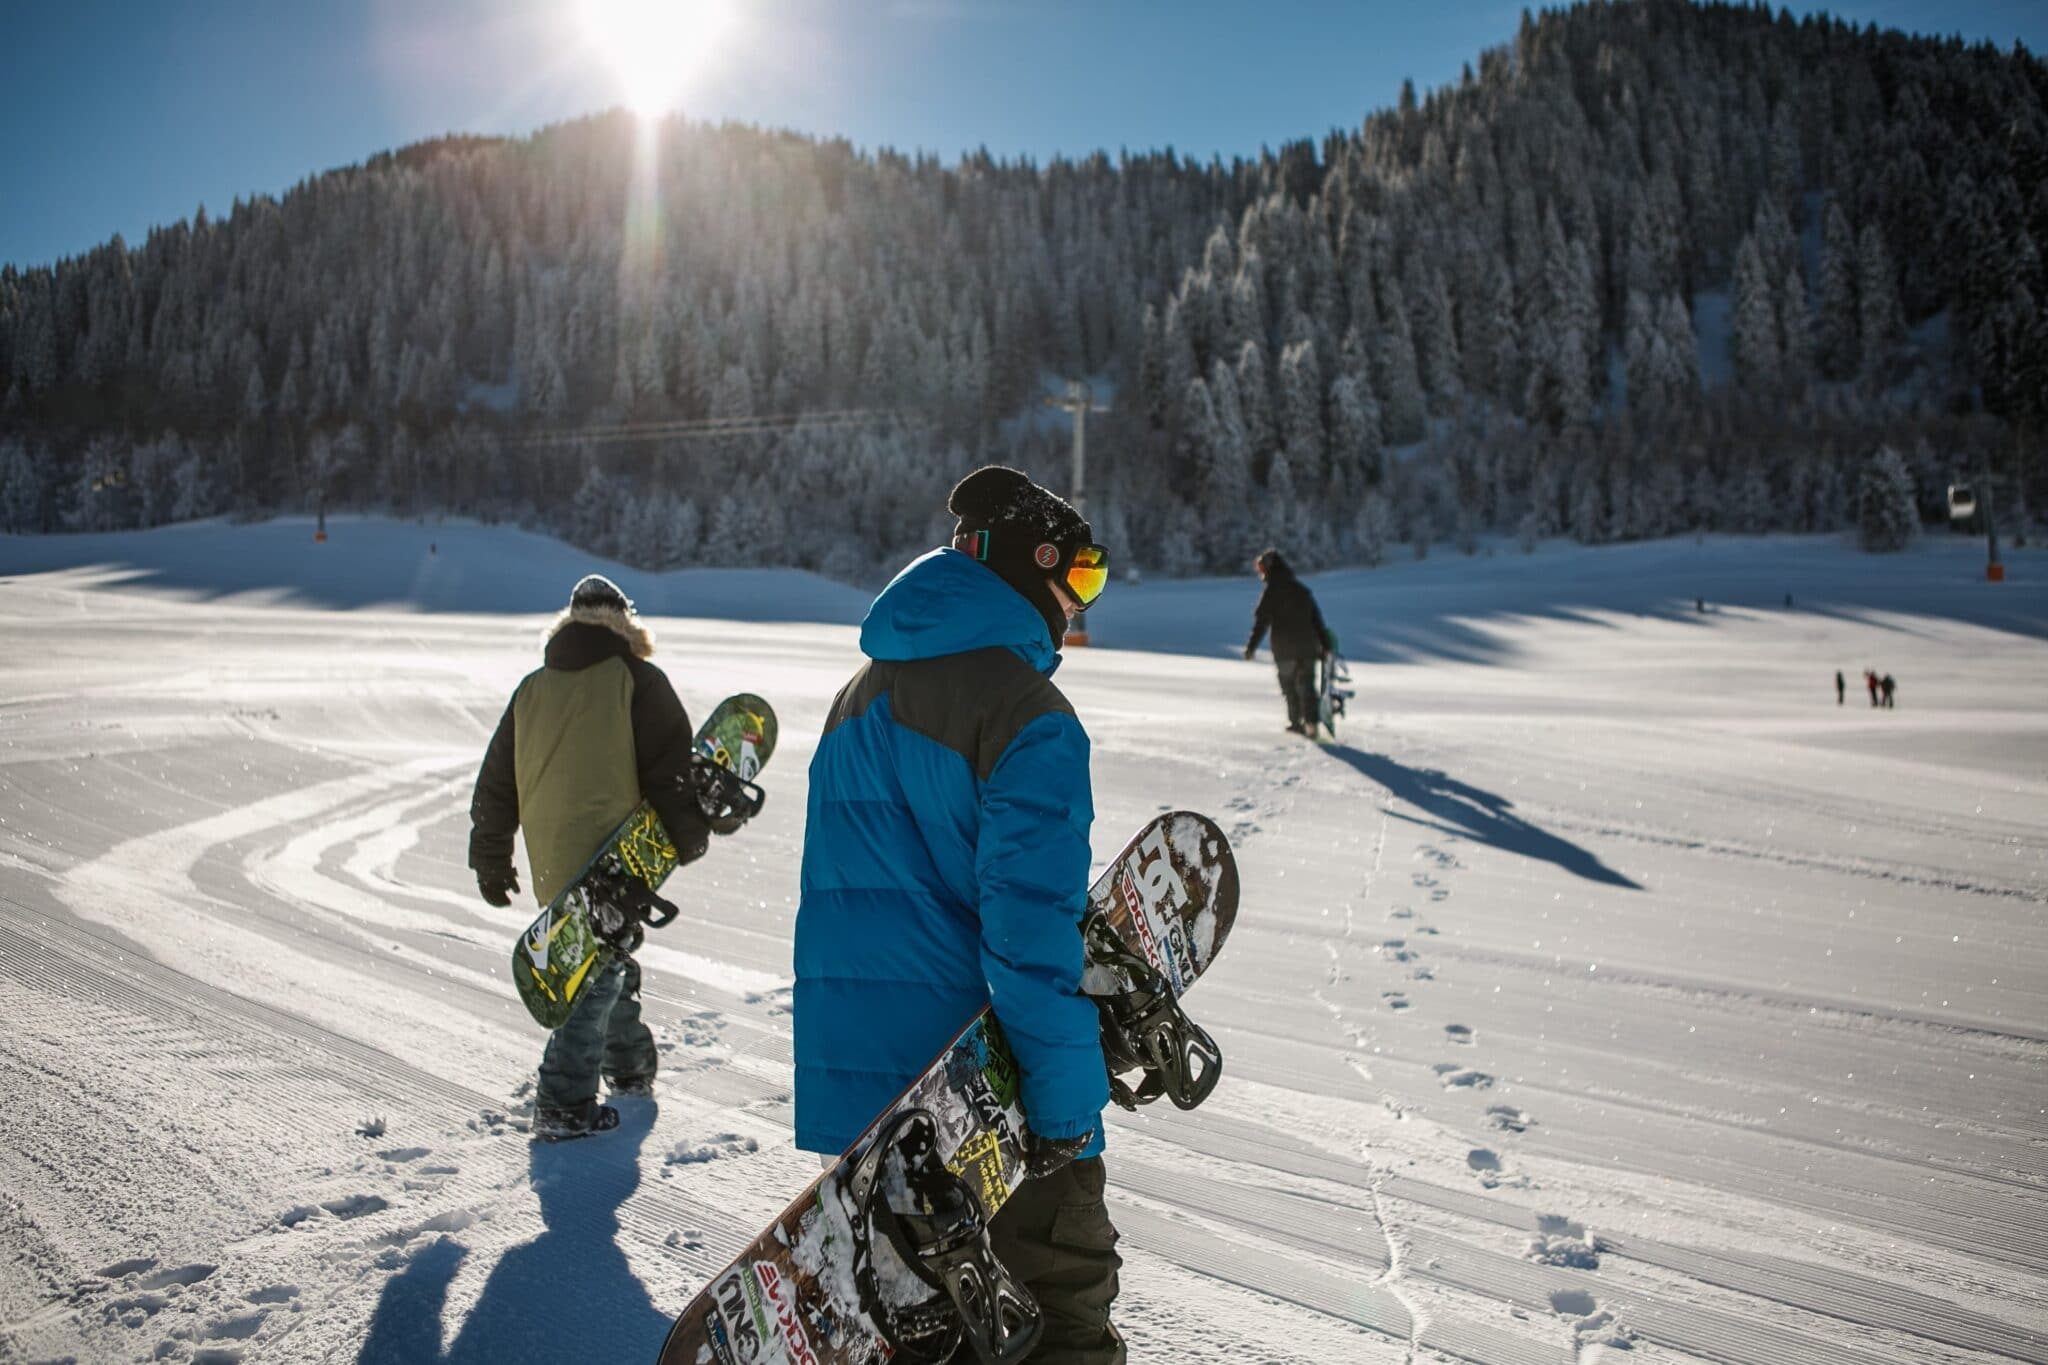 snowboarders prepare to hit the slopes